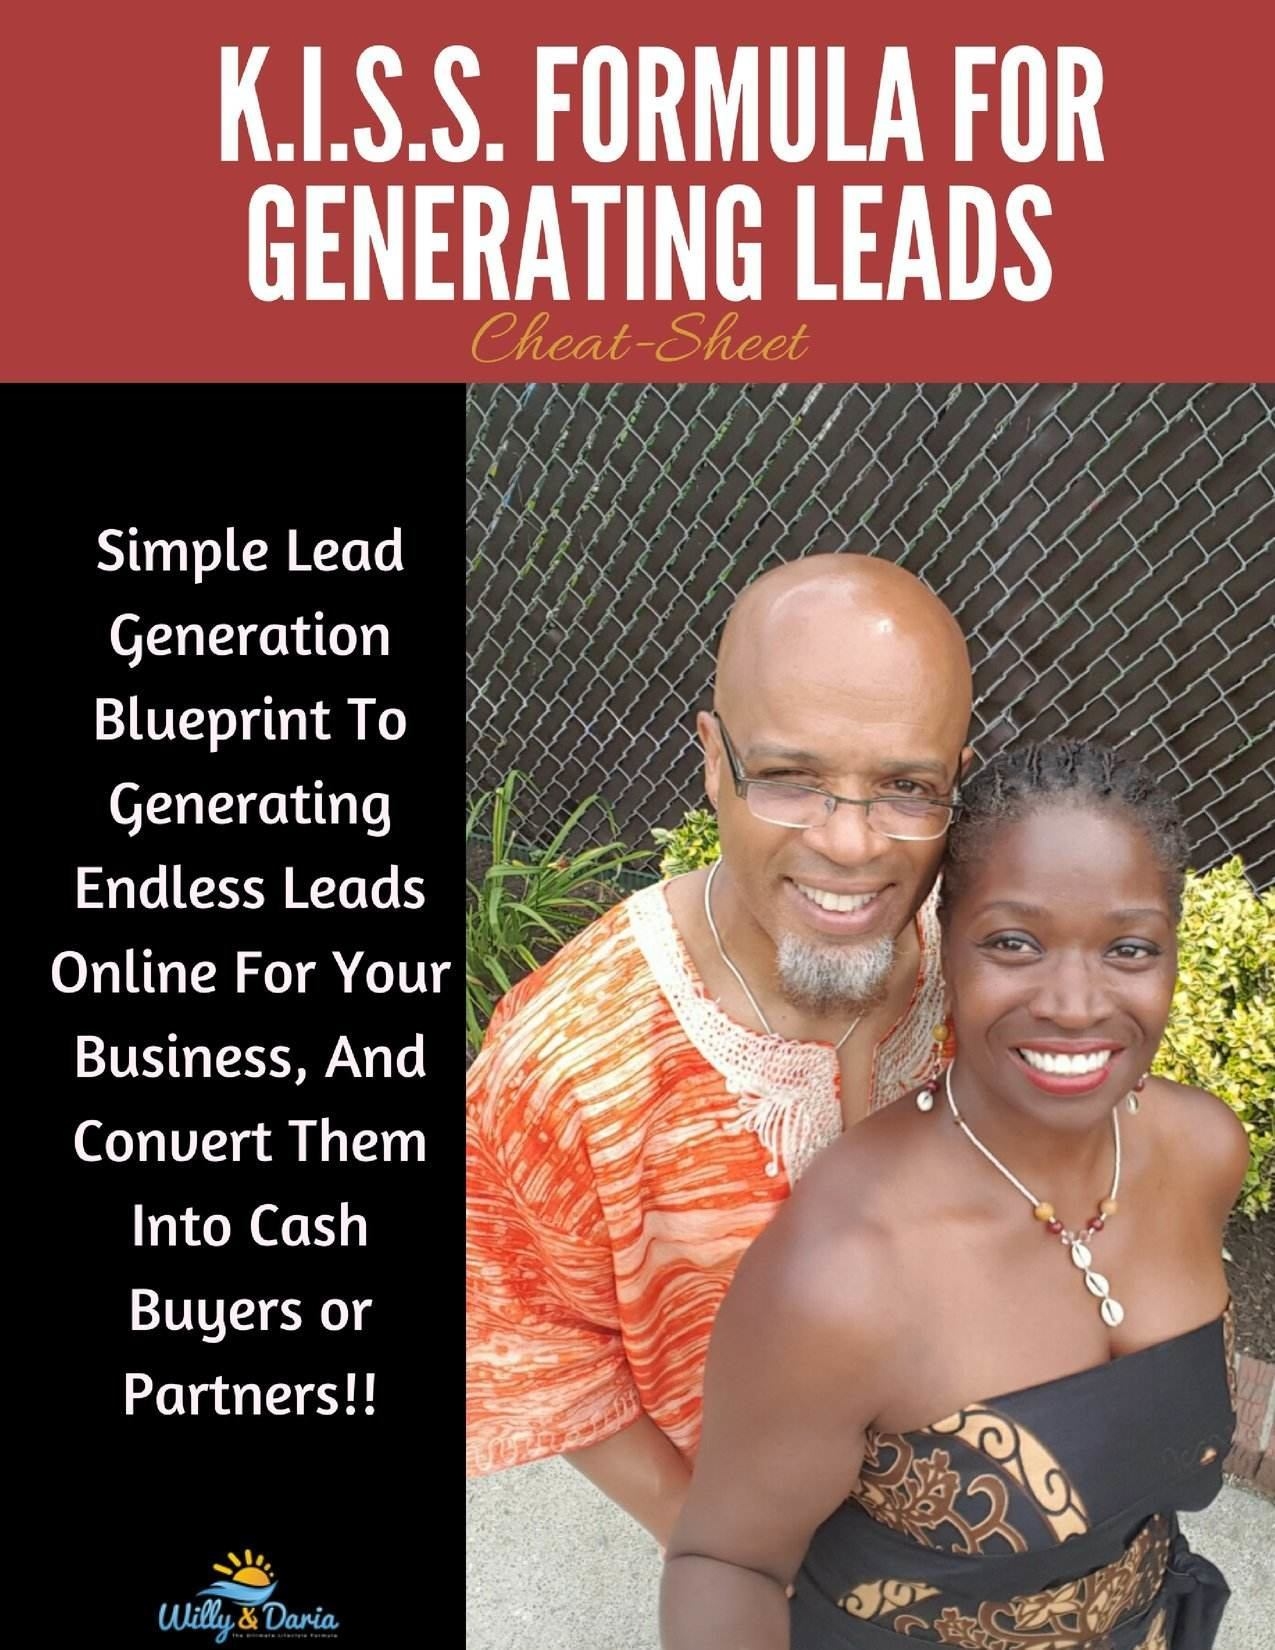 My K.I.S.S. Formula for Generating Targeted Leads